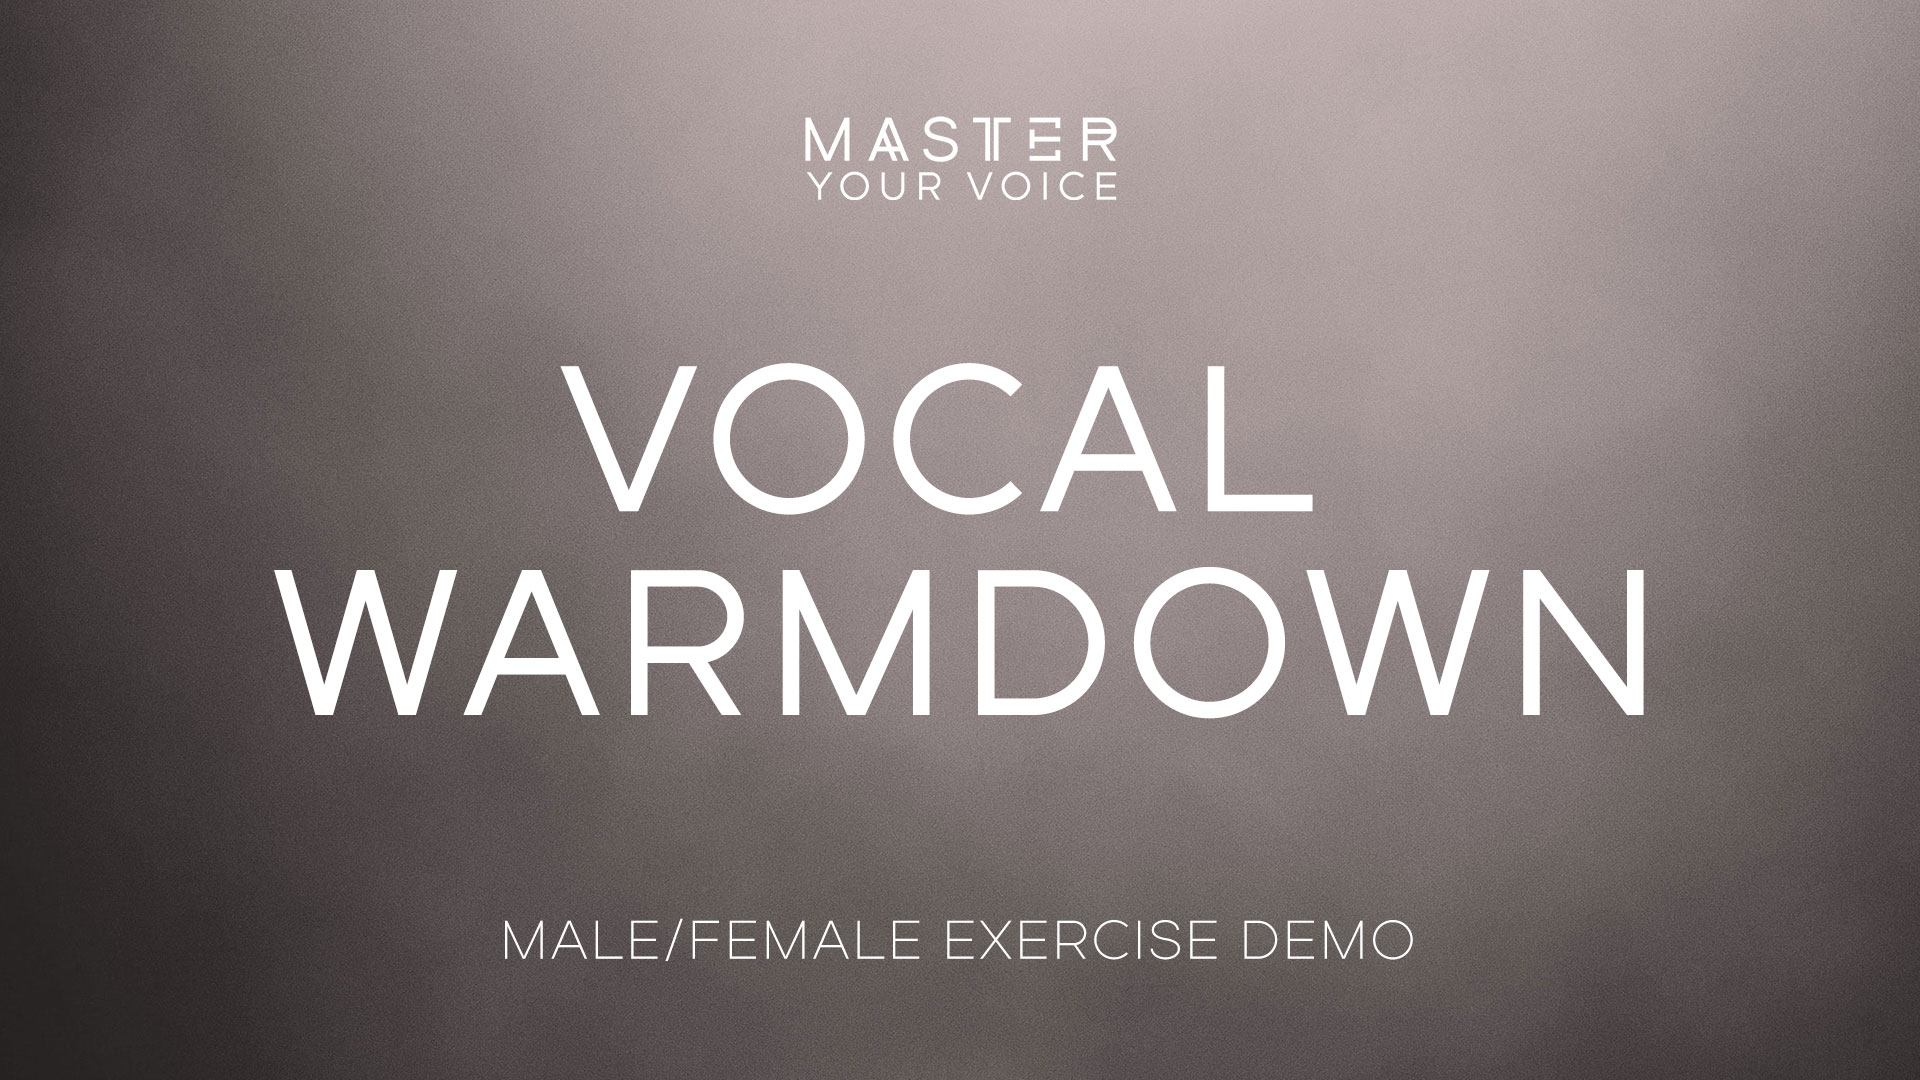 Vocal Warmdown Exercise Demo